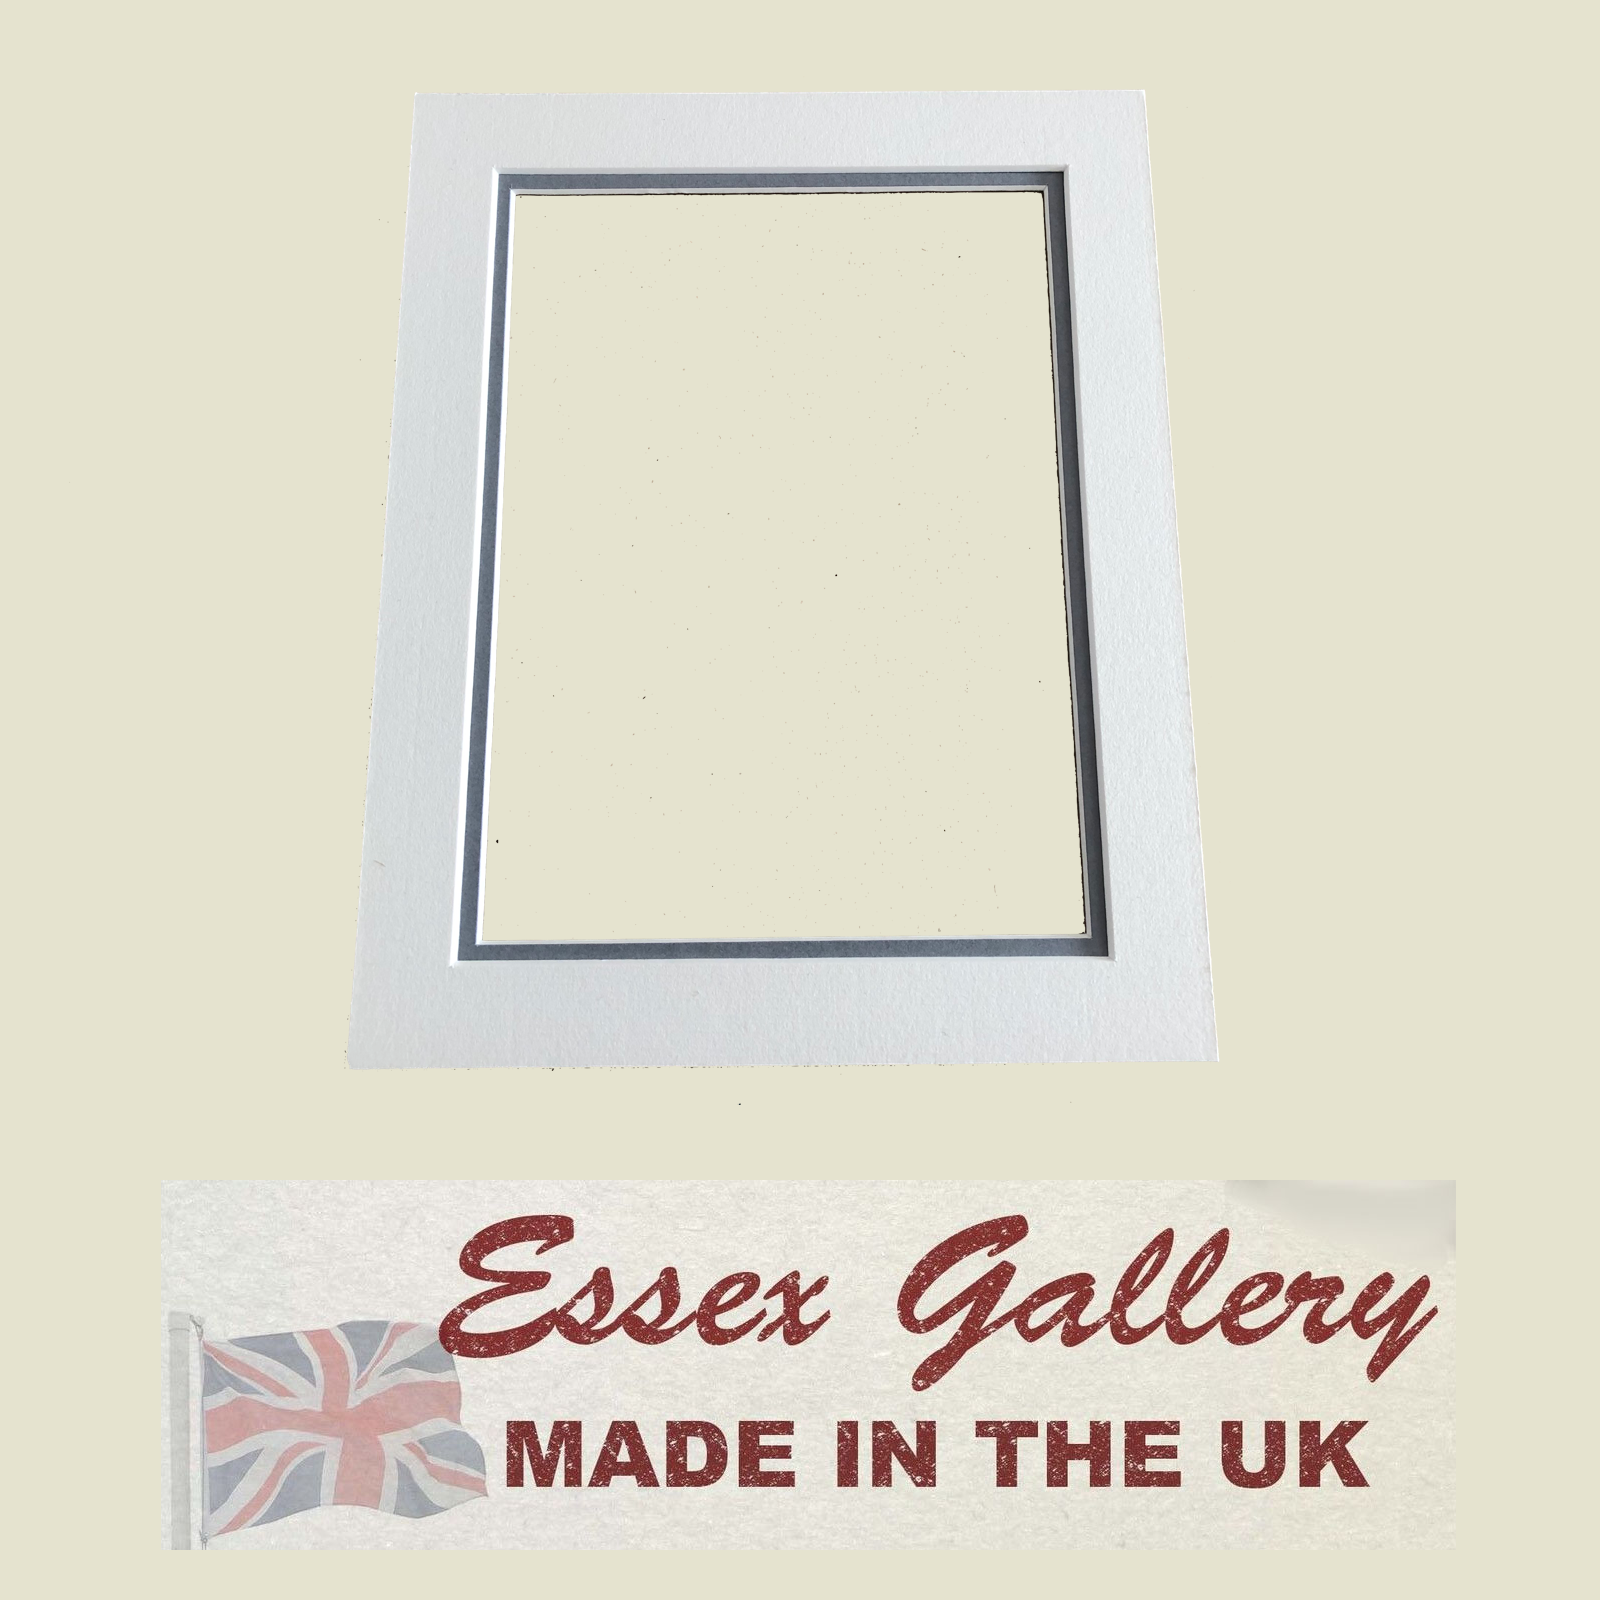 Bespoke Picture & Photo Frame Double Mounts - Cut to Any Size (Max Size 20x16) 5